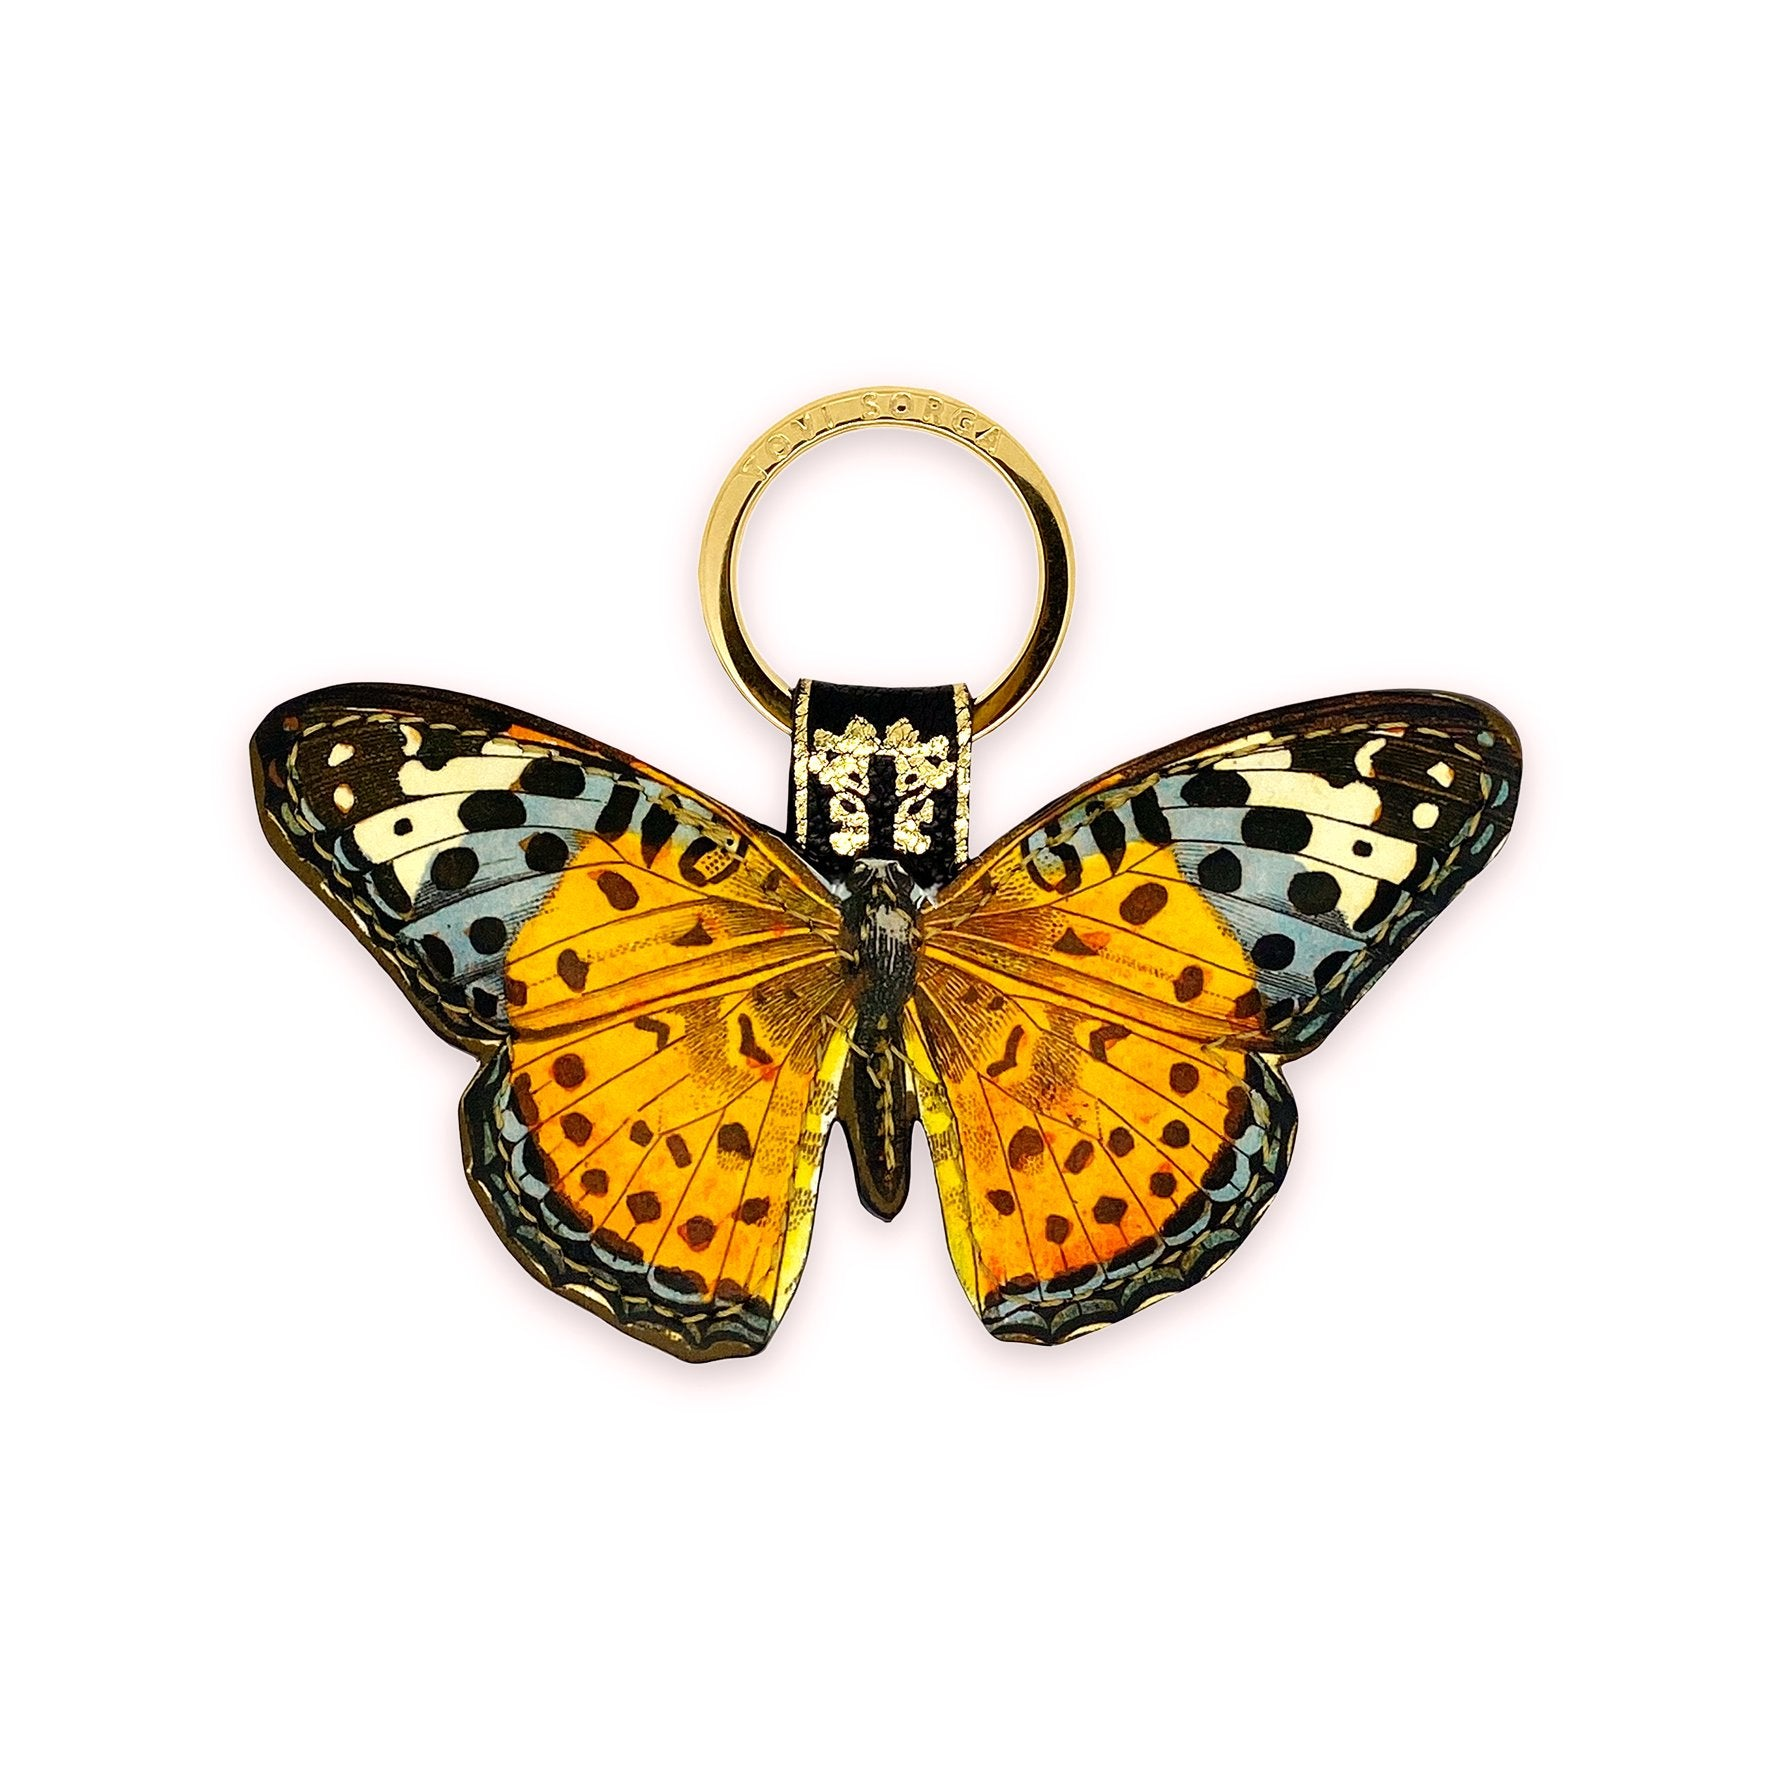 Leather Key Ring / Bag Charm - Marmaduke Butterfly Key Ring / Bag Charm Tovi Sorga